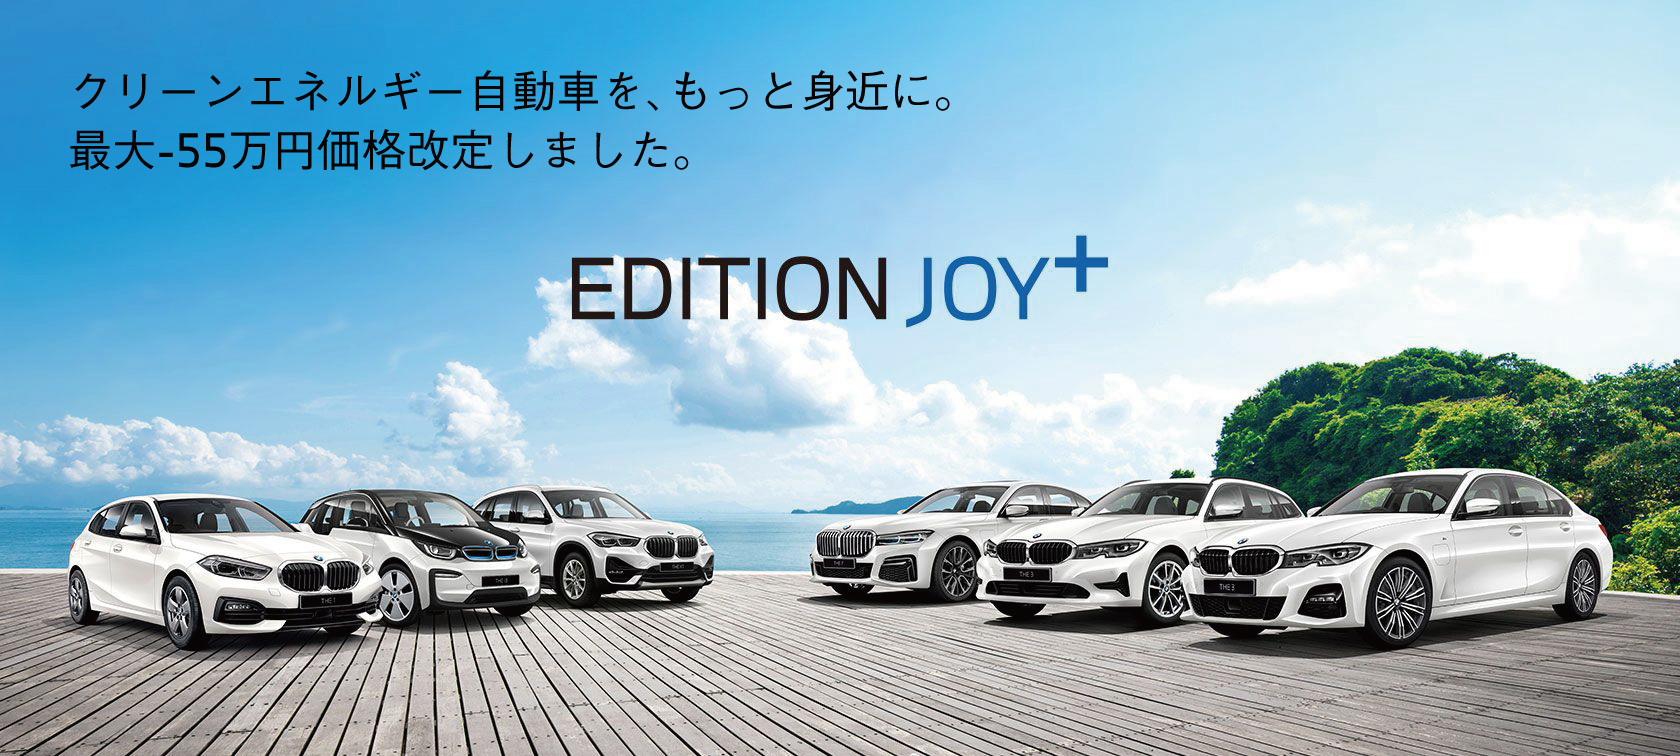 BMW EDITION JOY+